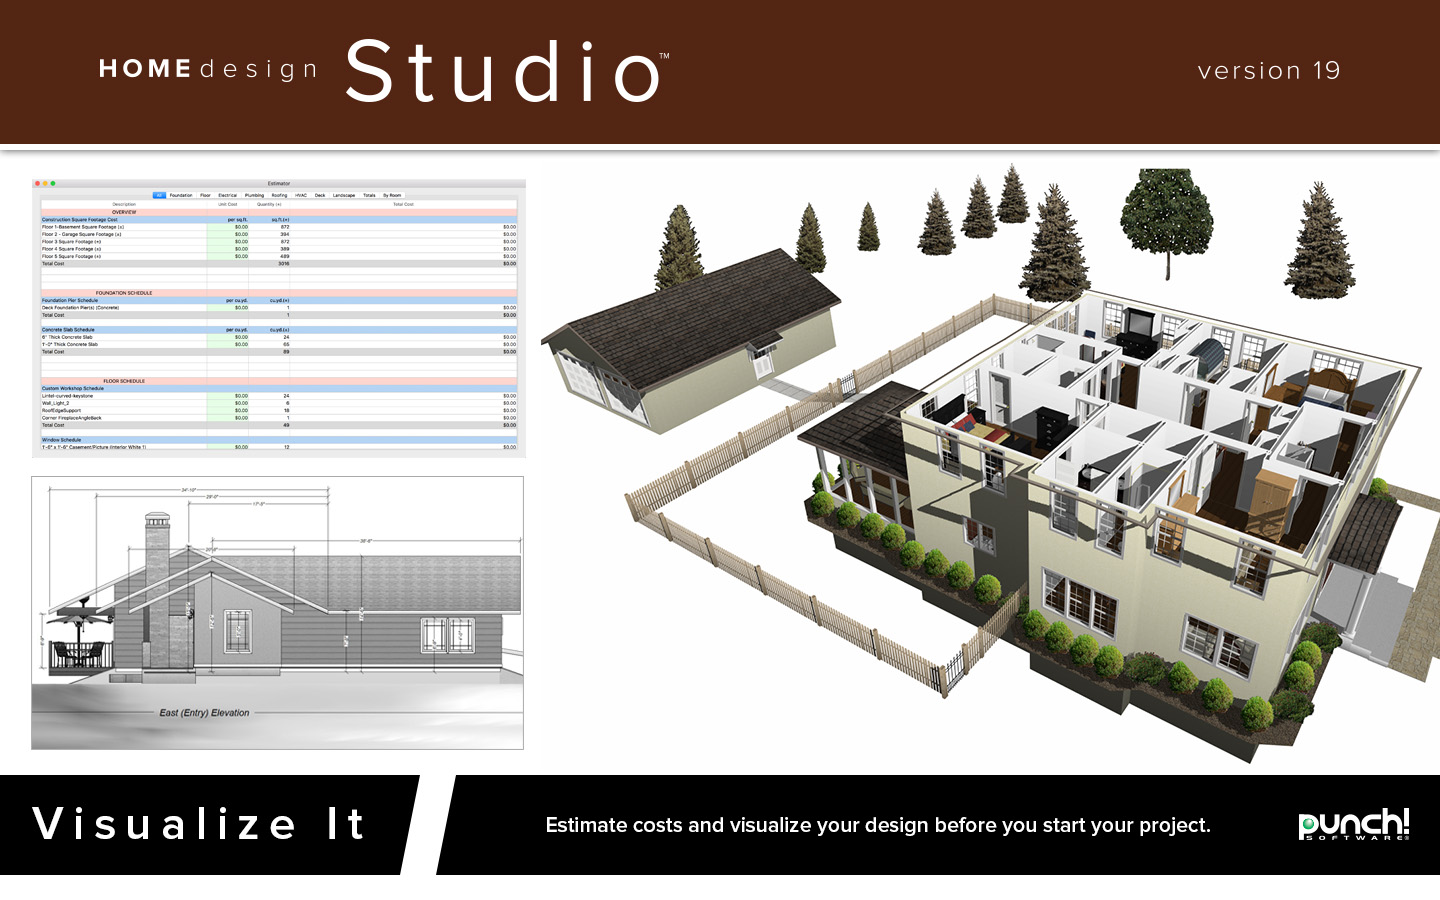 Punch! Home Design Studio Pro User Reviews & Pricing